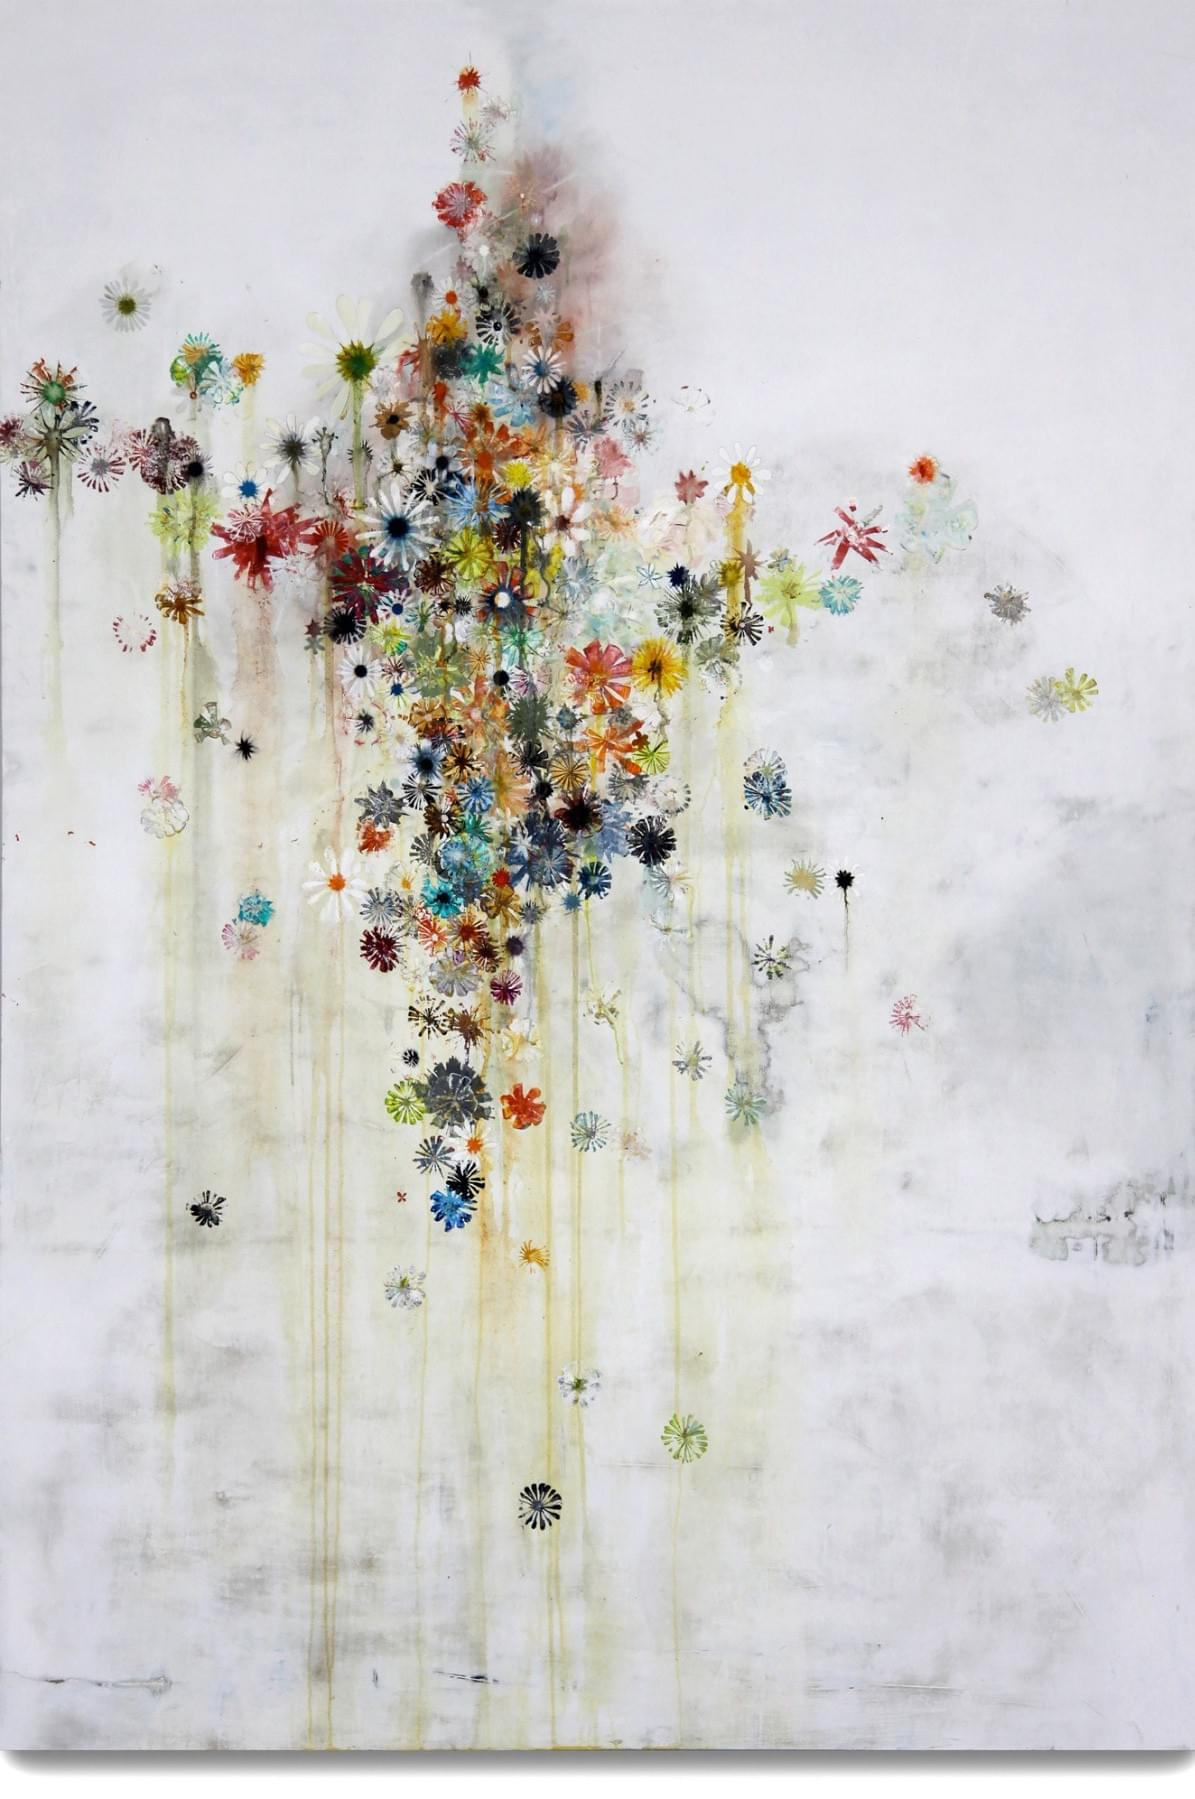 Painting - schilderij - Harm van den Berg - Wallflower, 2009, 176 x 125 cm, oil / acrylic on wood